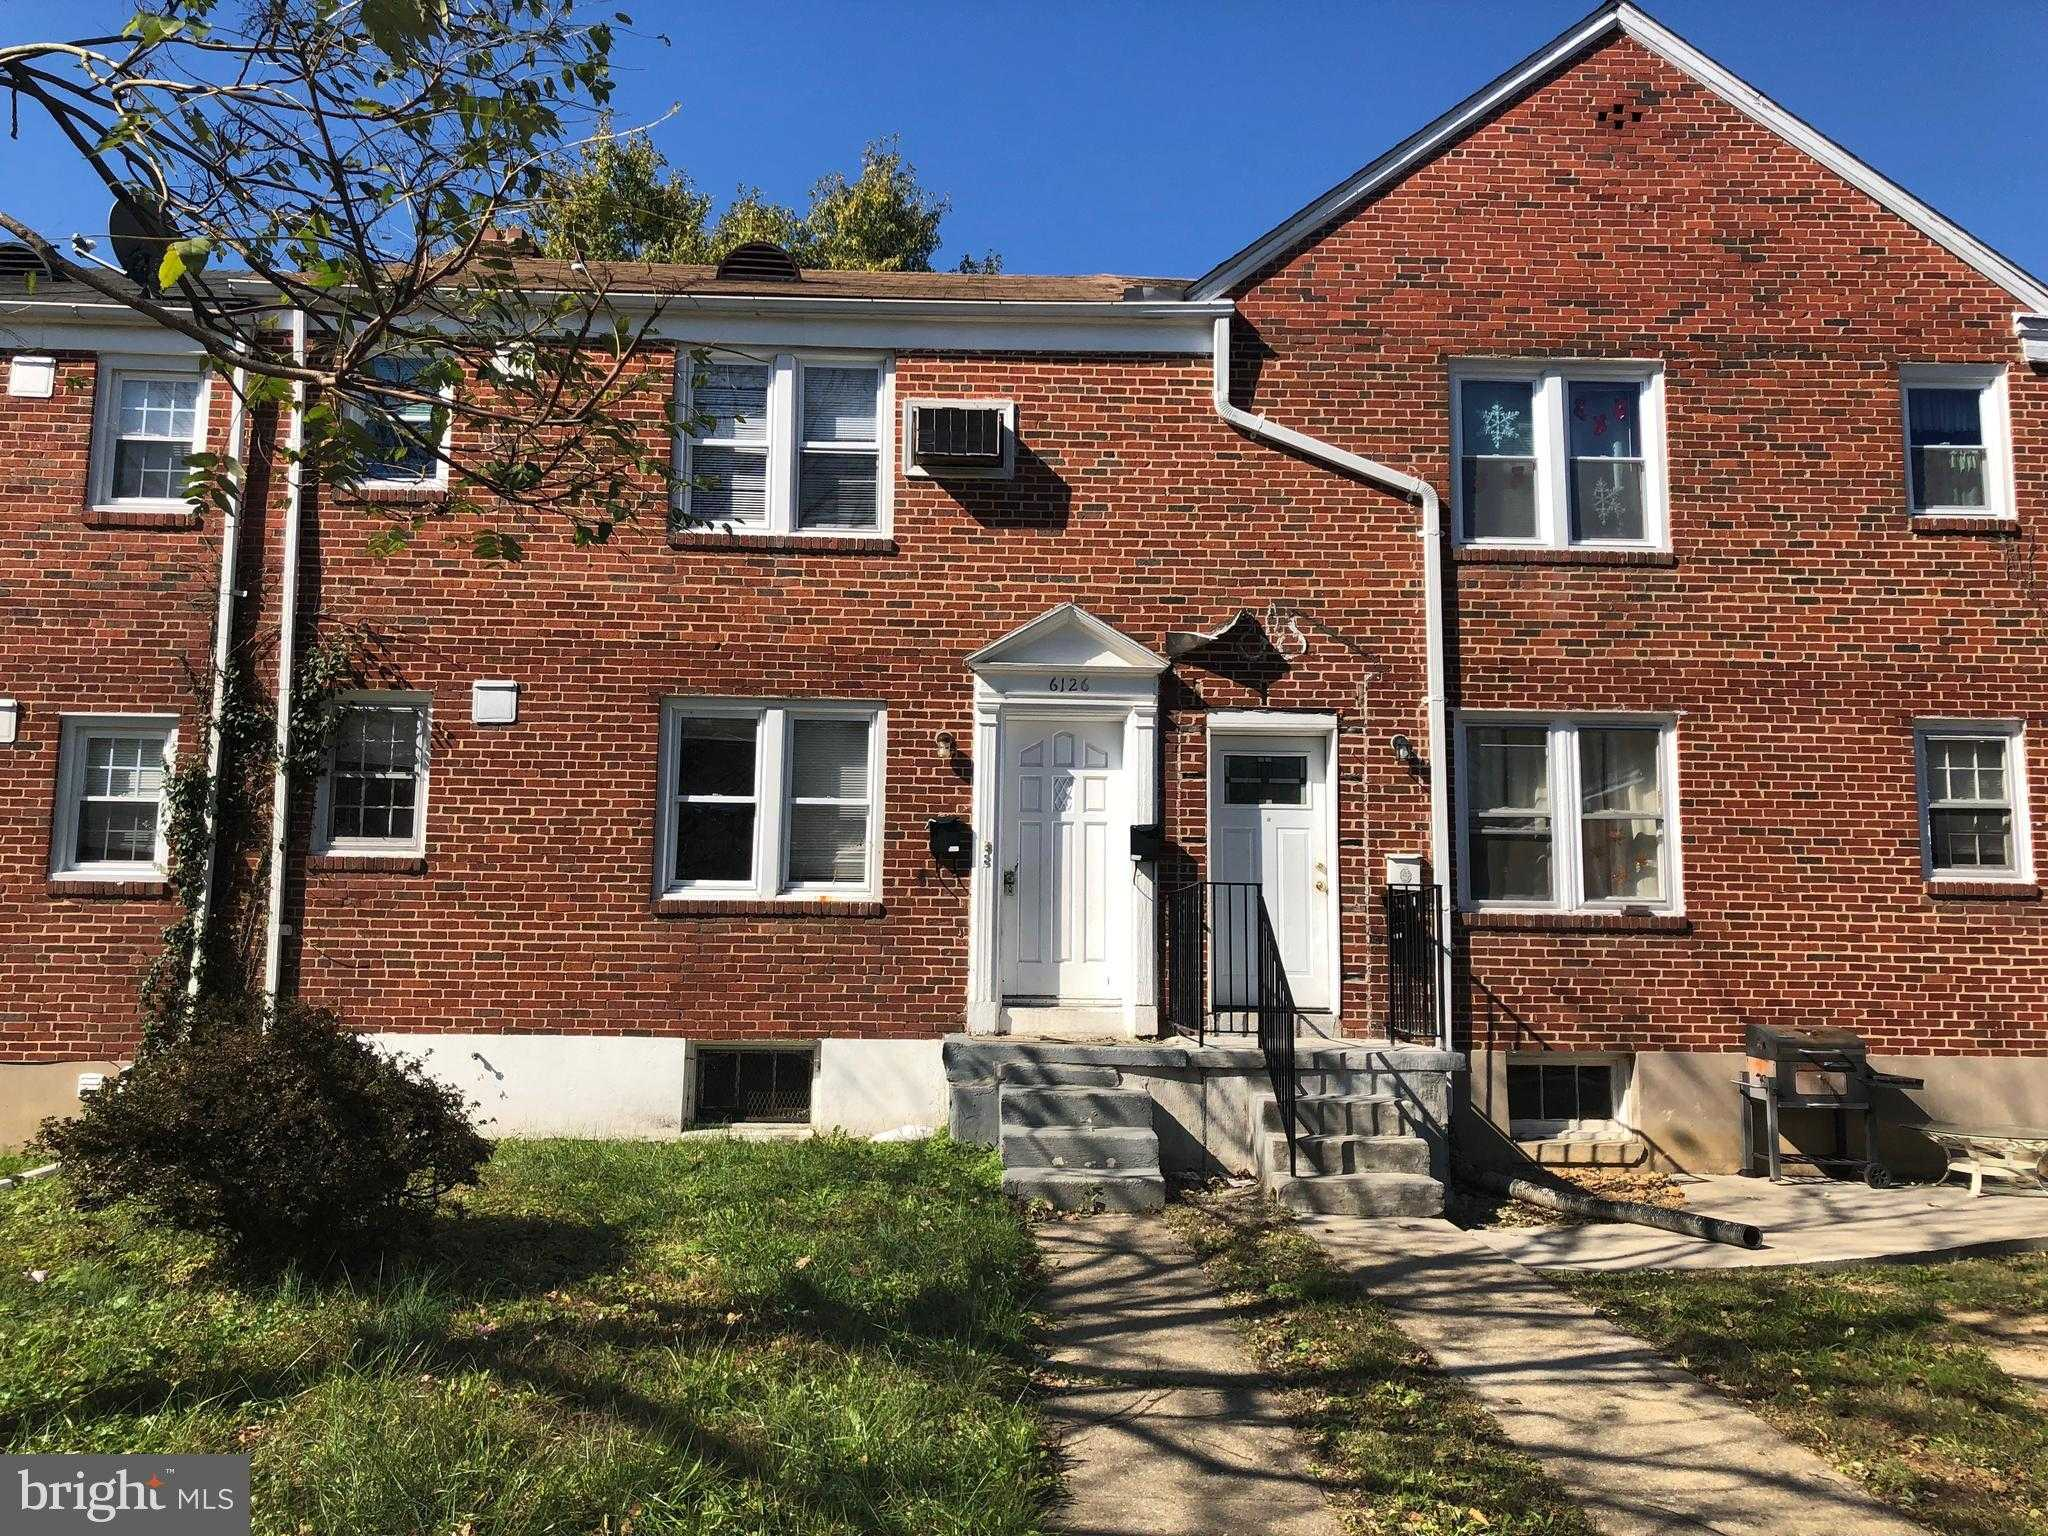 $165,000 - 5Br/2Ba -  for Sale in Idlewood, Baltimore